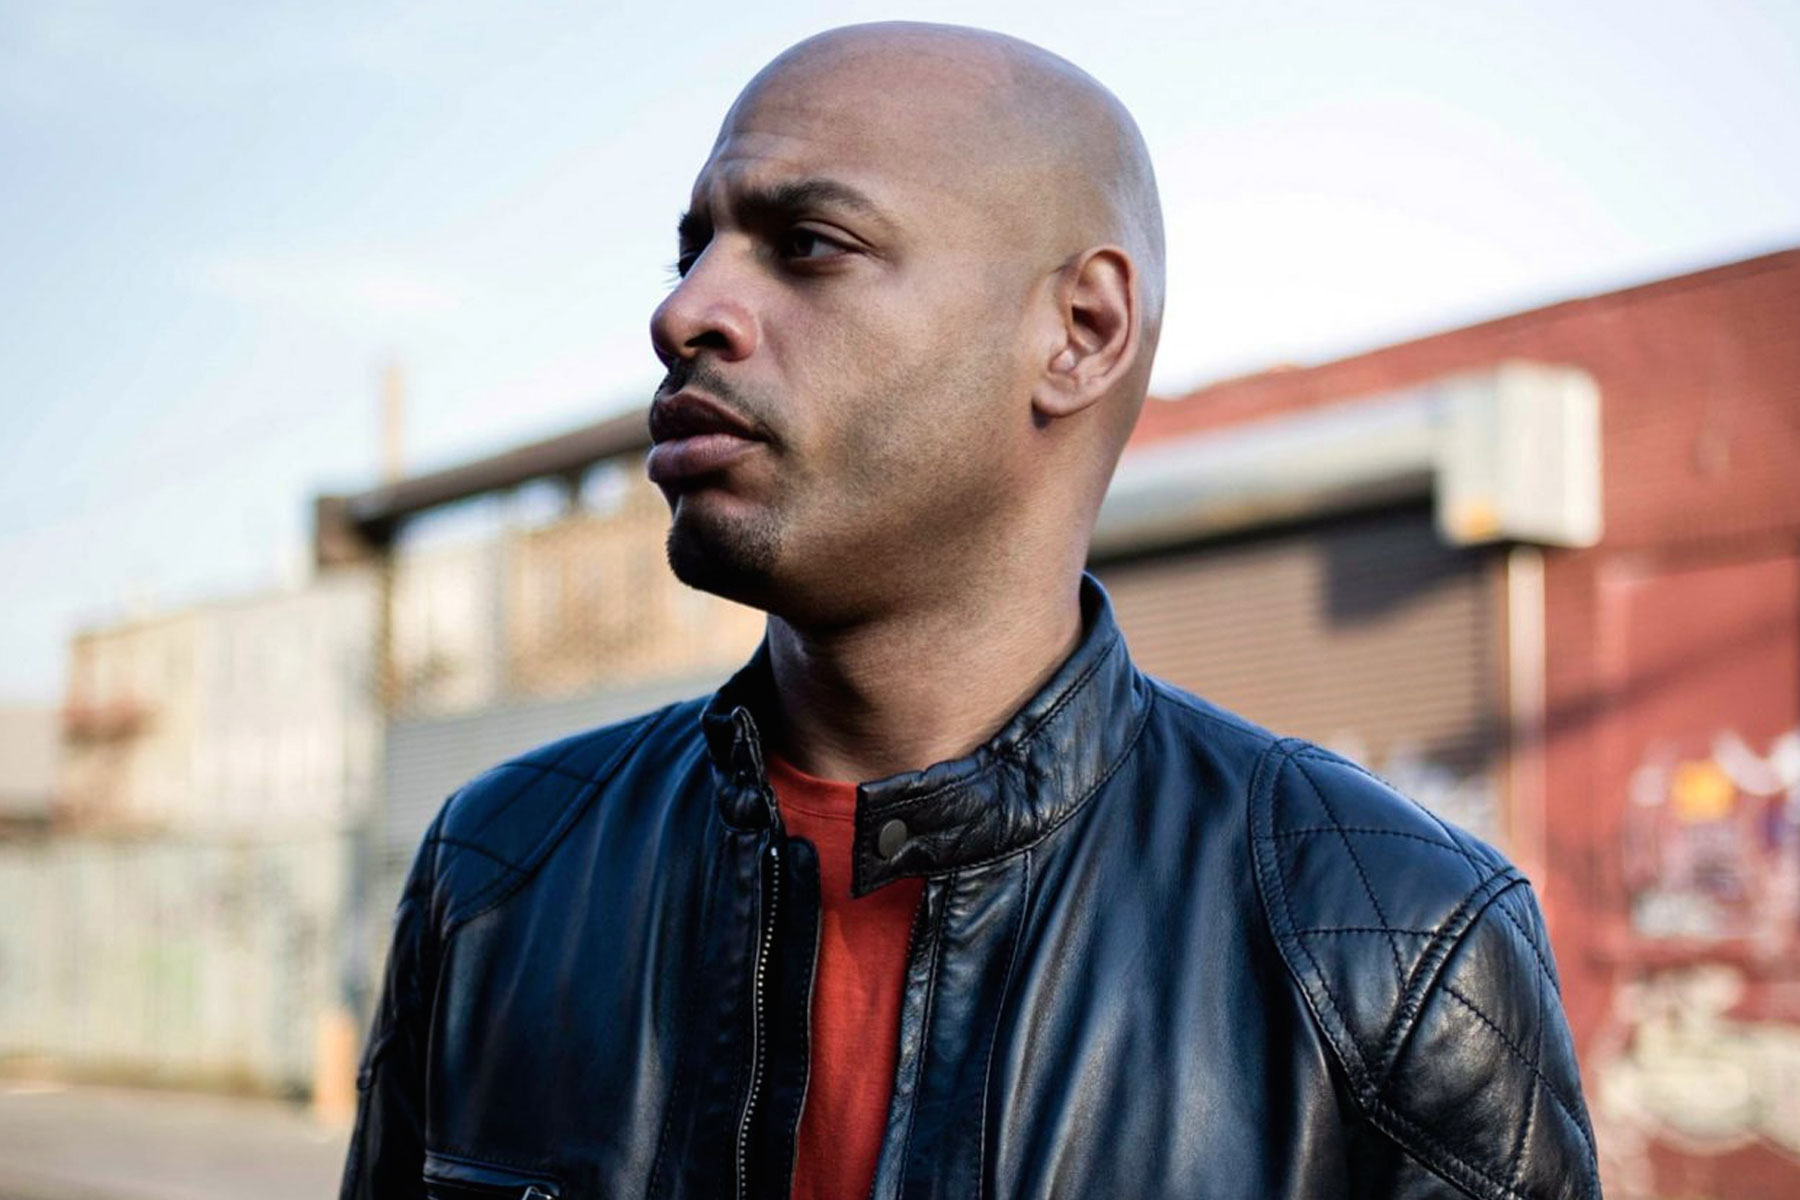 How about Dennis Ferrer at Spybar this weekend?